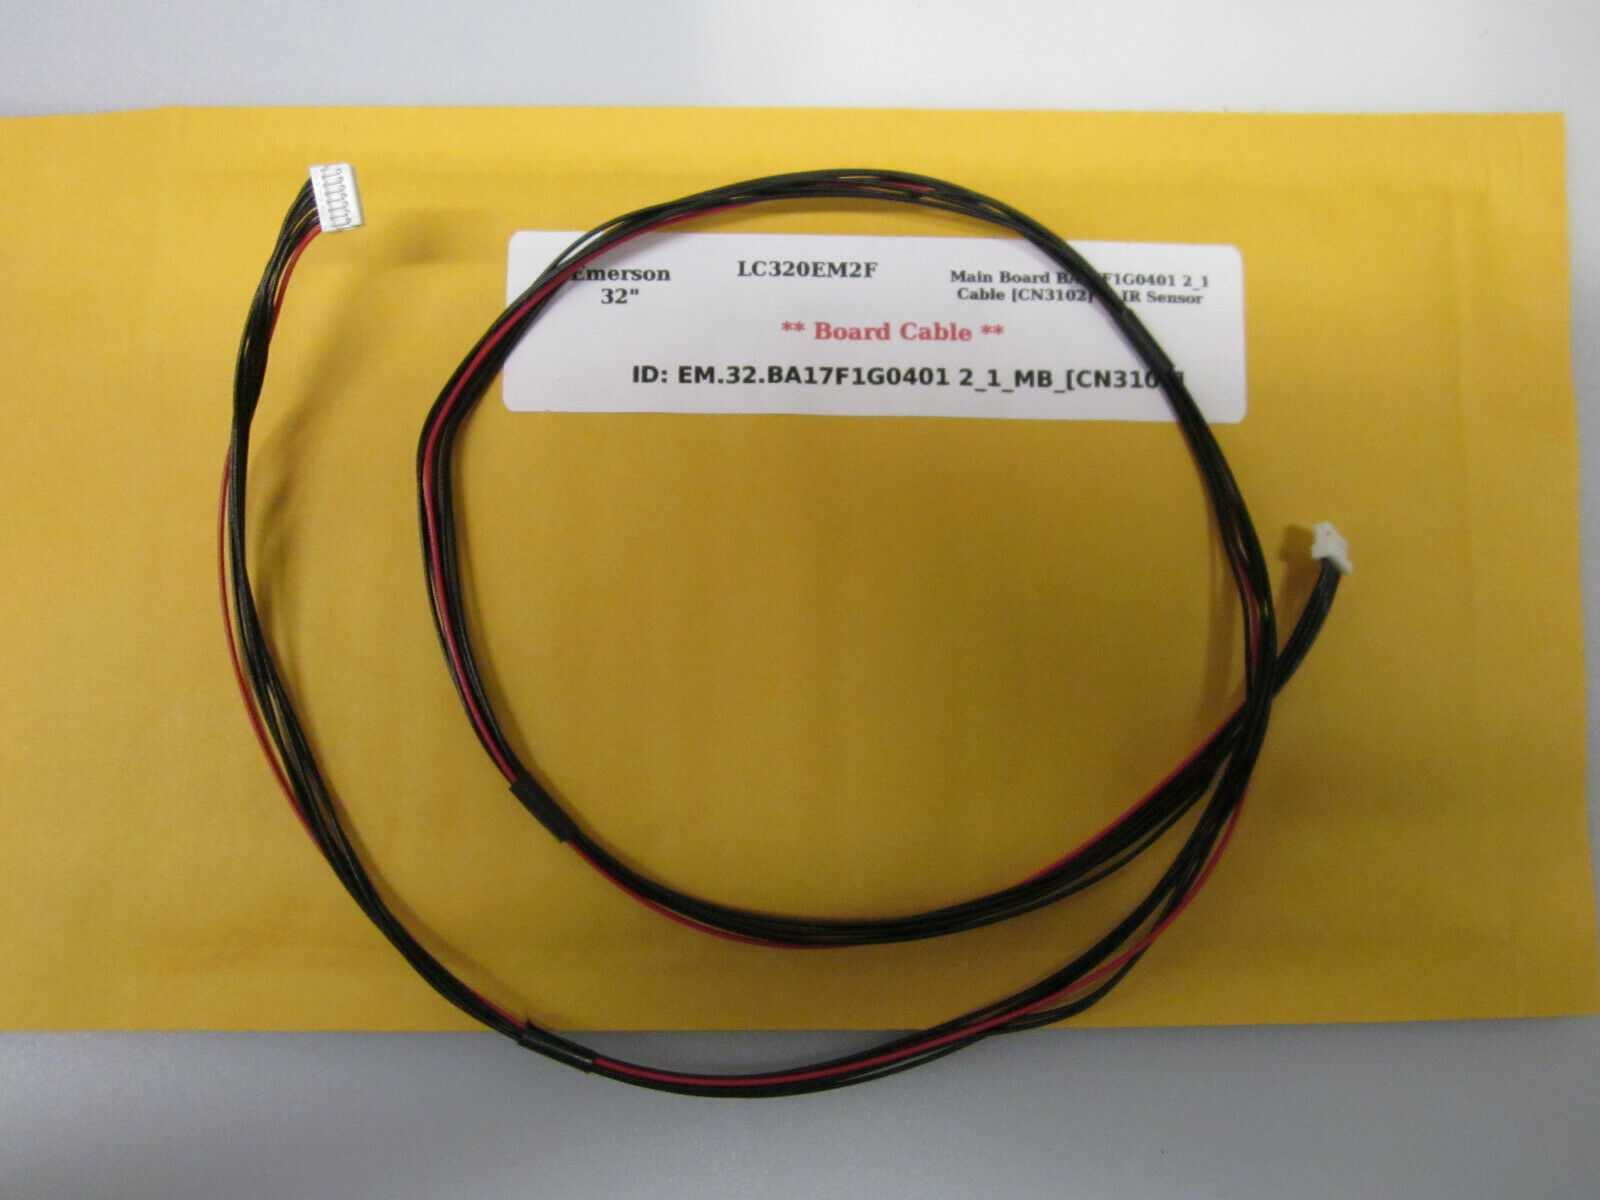 "Primary image for Emerson 32"" LC320EM2F Main Board BA17F1G0401 2_1 Cable [CN3102] to IR Sensor"